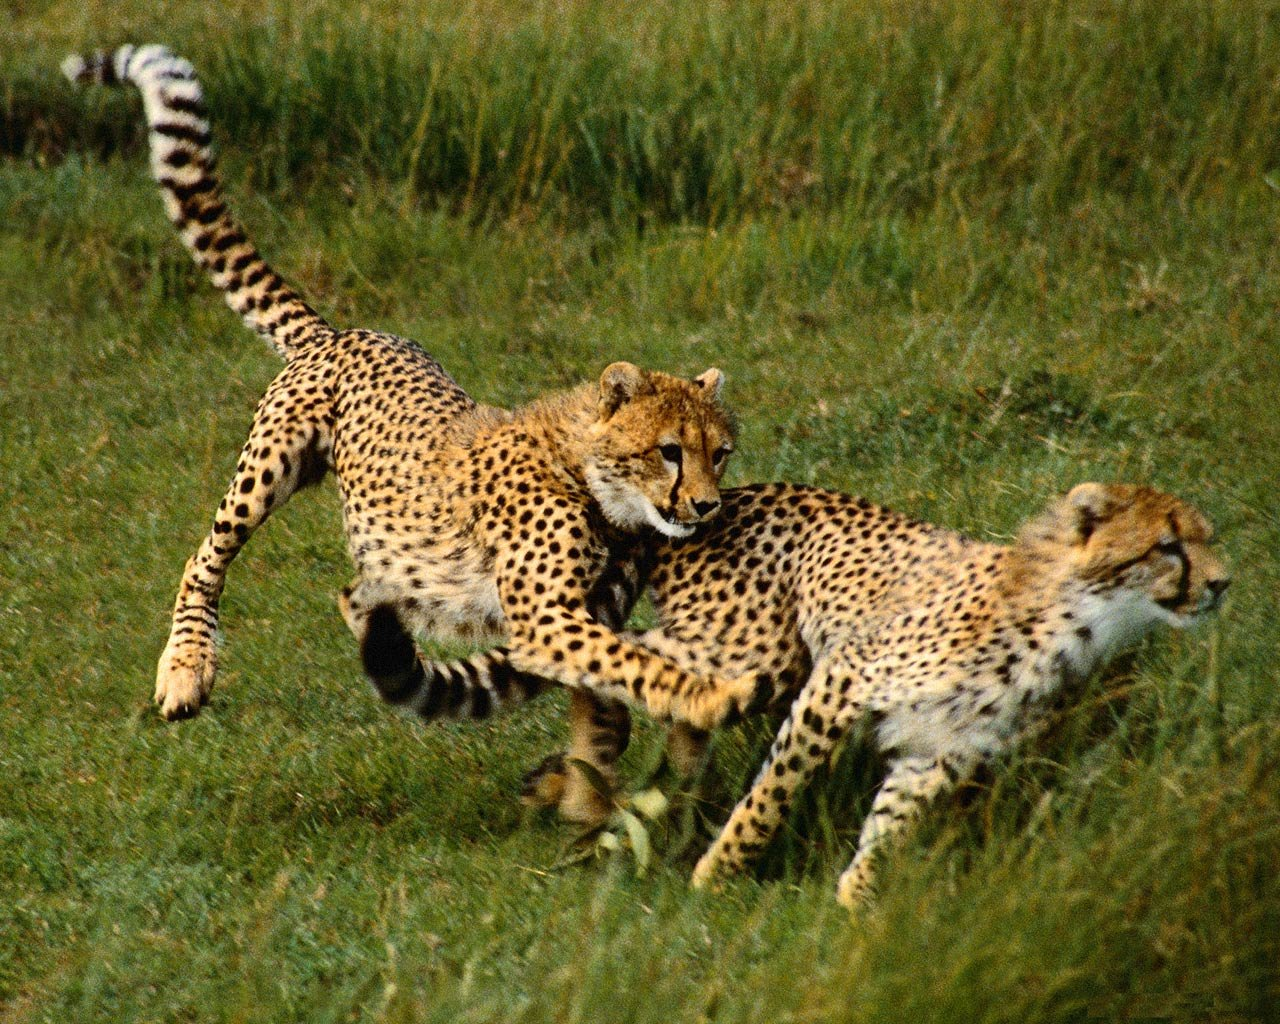 the endangerment of the cheetah A cheetah cub with its mother in the maasai mara national reserve in kenya researchers called for the international union for conservation of nature to change the cheetah's status from vulnerable to endangered.